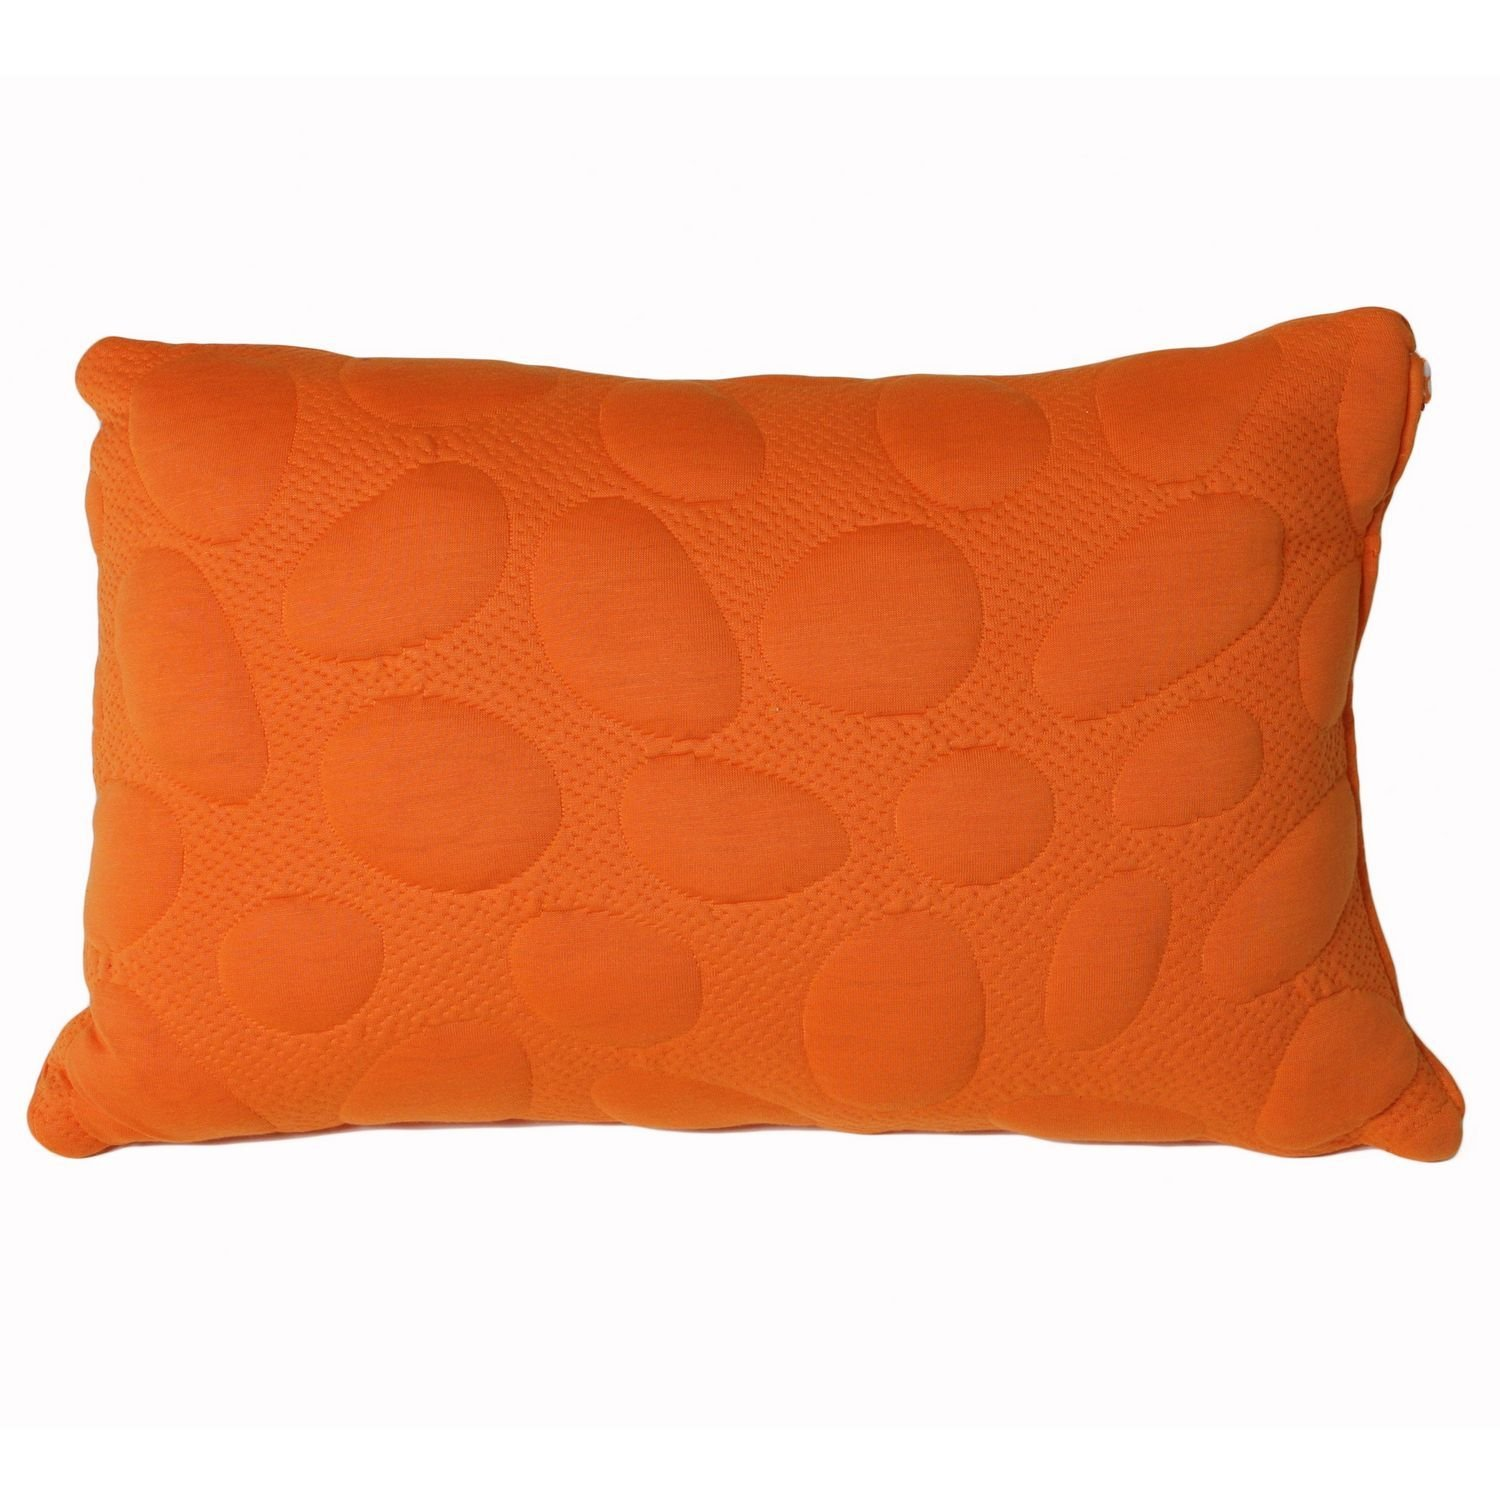 Nook Pebble Queen Size Pillow - Poppy